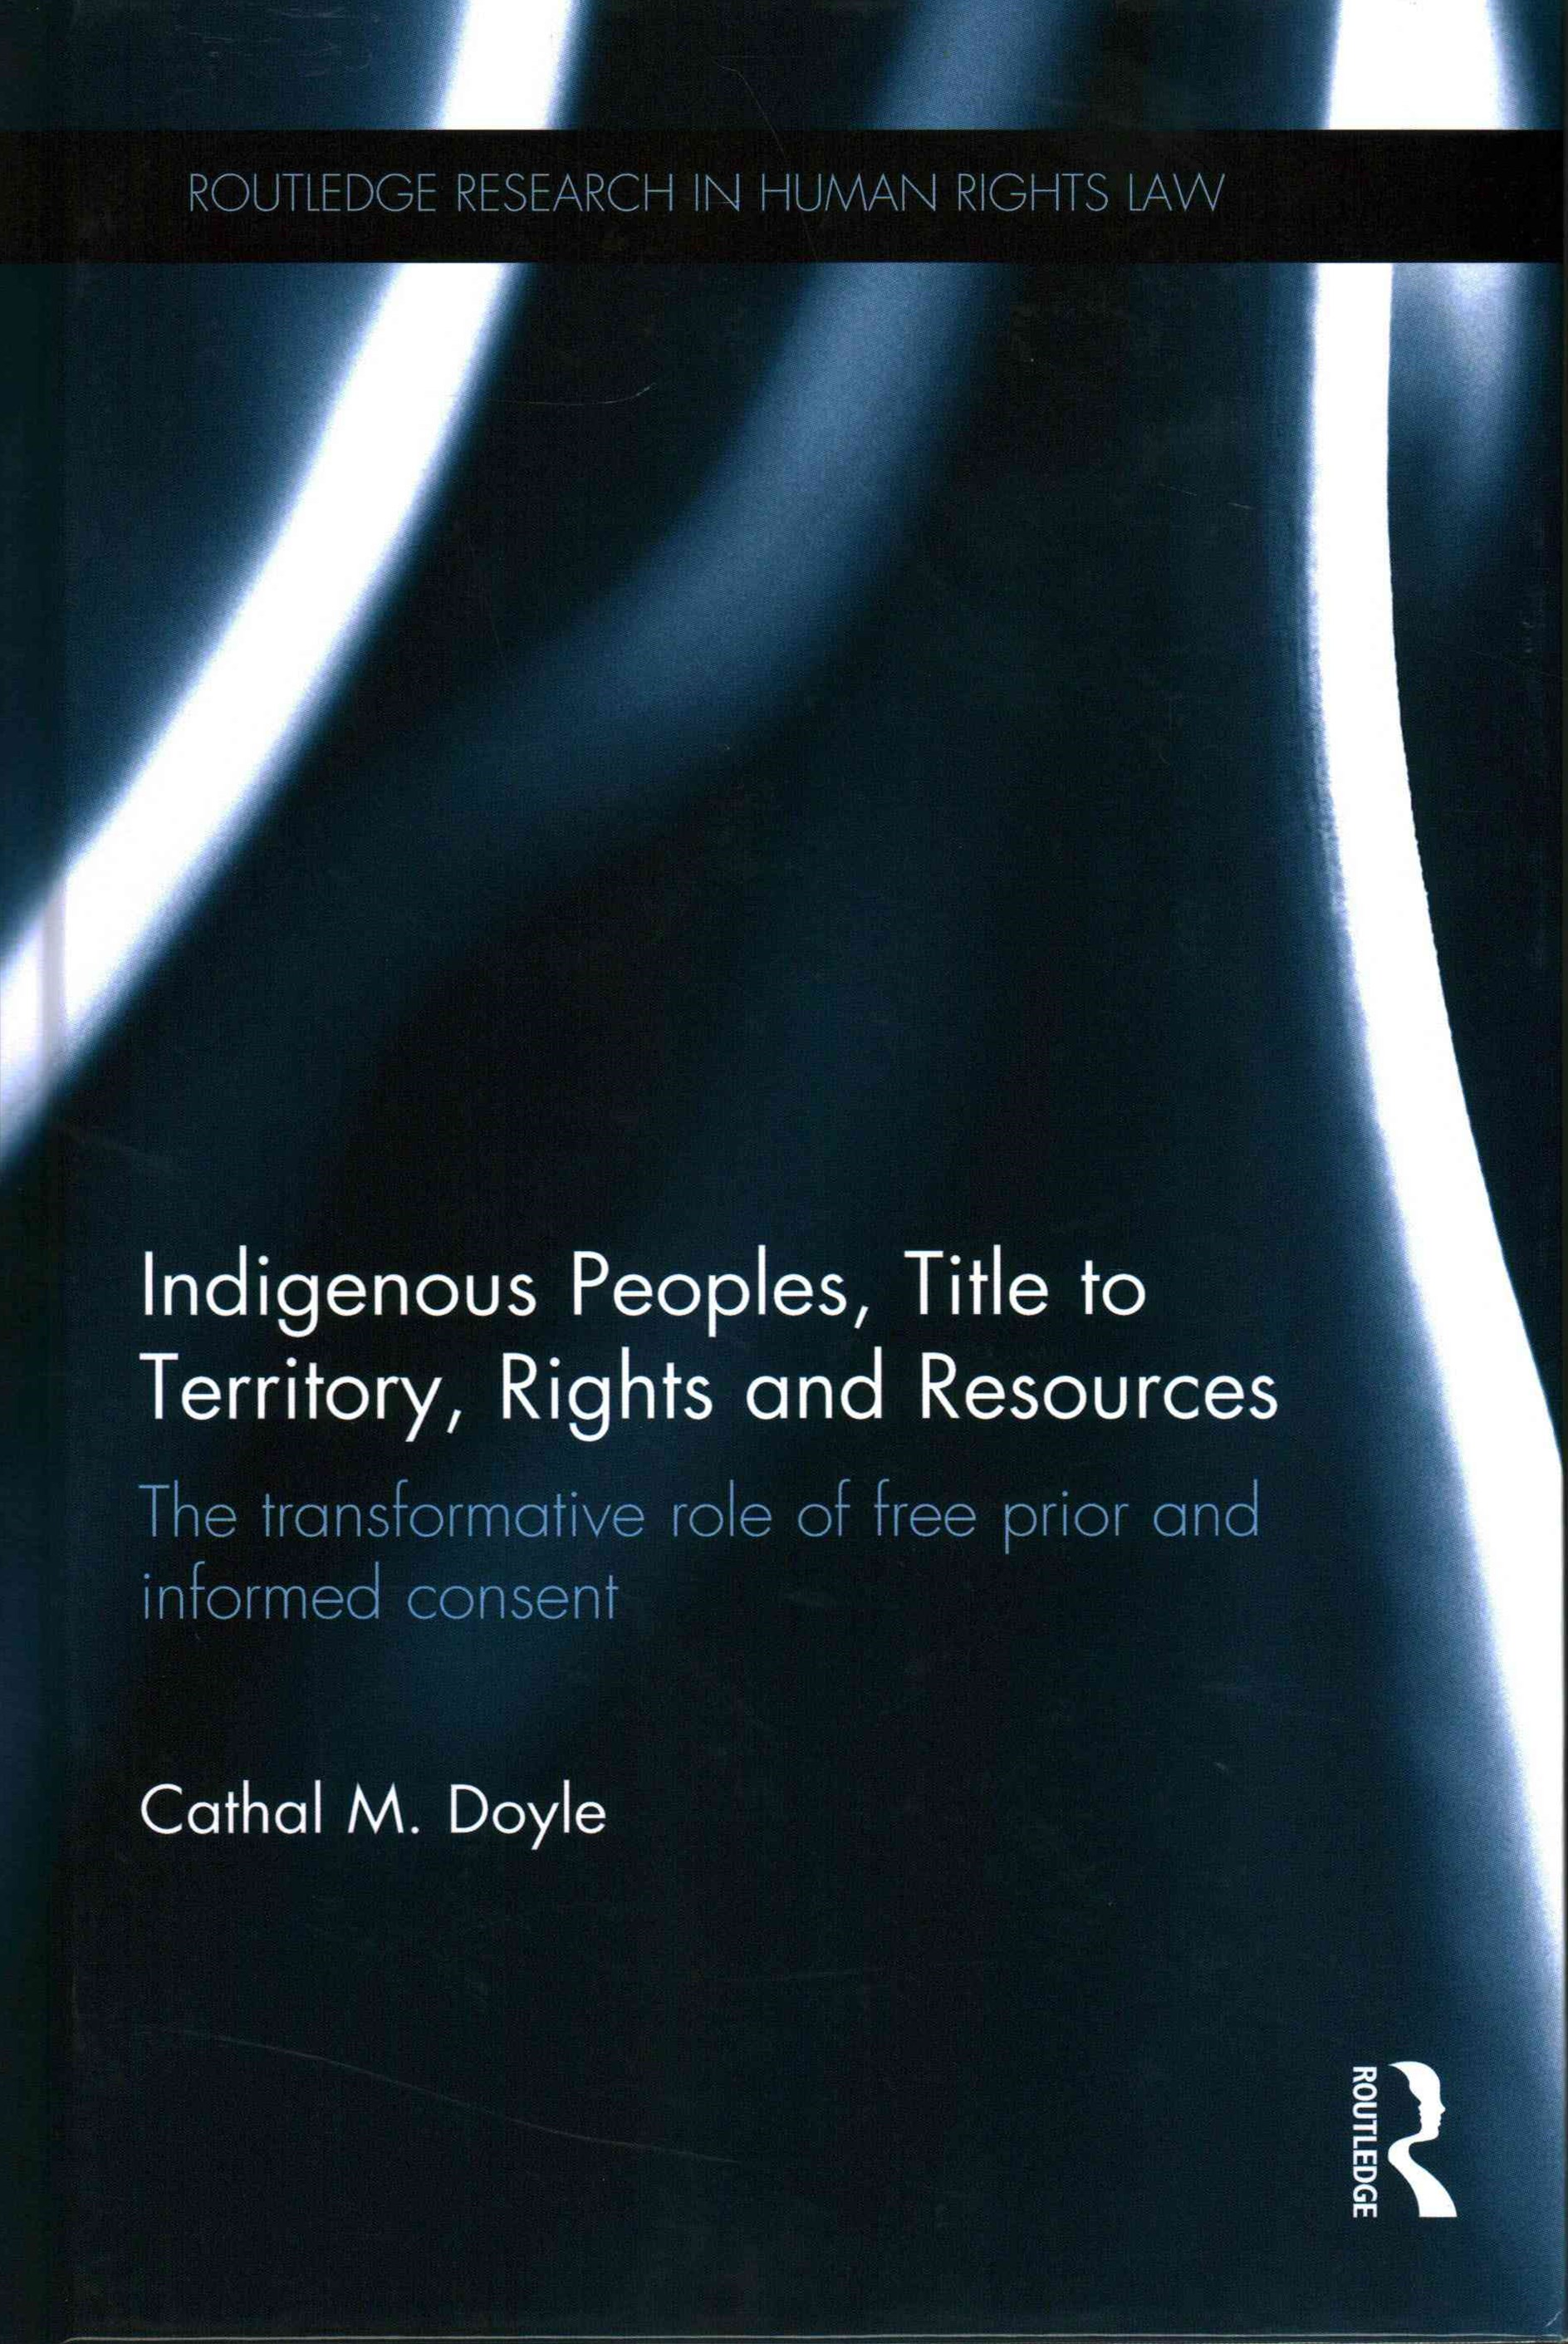 Indigenous Peoples, Title to Territory, Rights and Resources